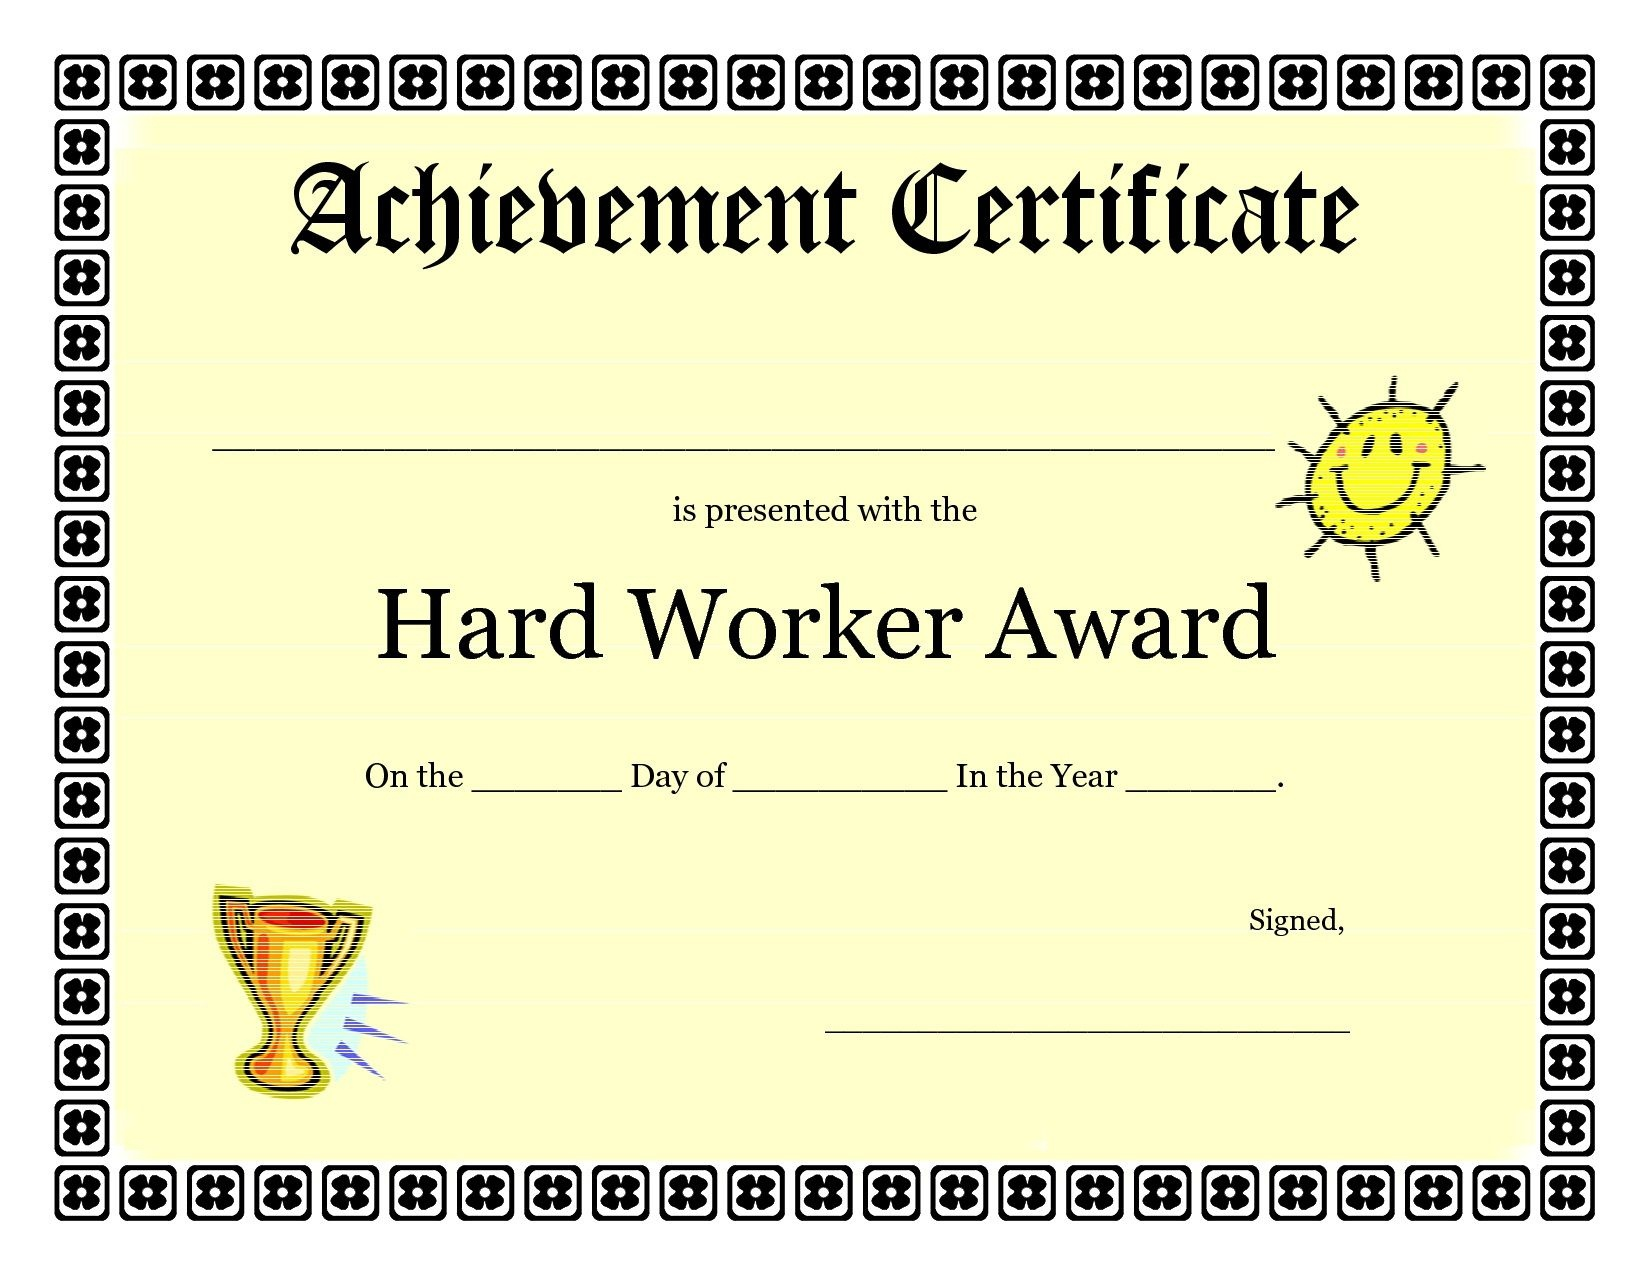 Certificate Of Achievement Template For Kids - Tutlin.psstech.co - Free Printable Award Certificates For Elementary Students